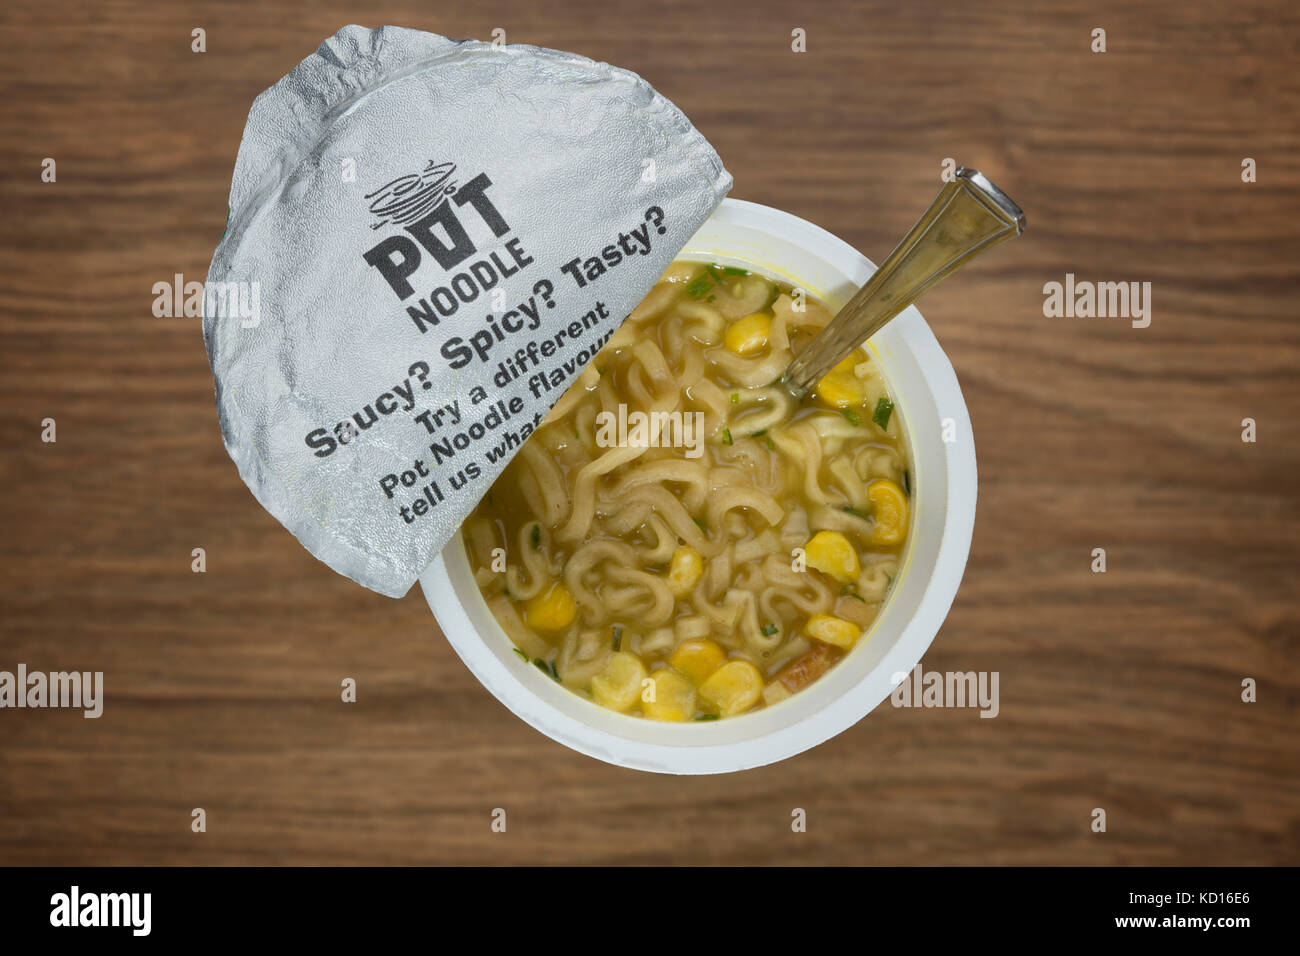 An overhead view of a Pot Noodle (Chicken and Mushroom flavour) in the process of being prepared using boiling water - Stock Image